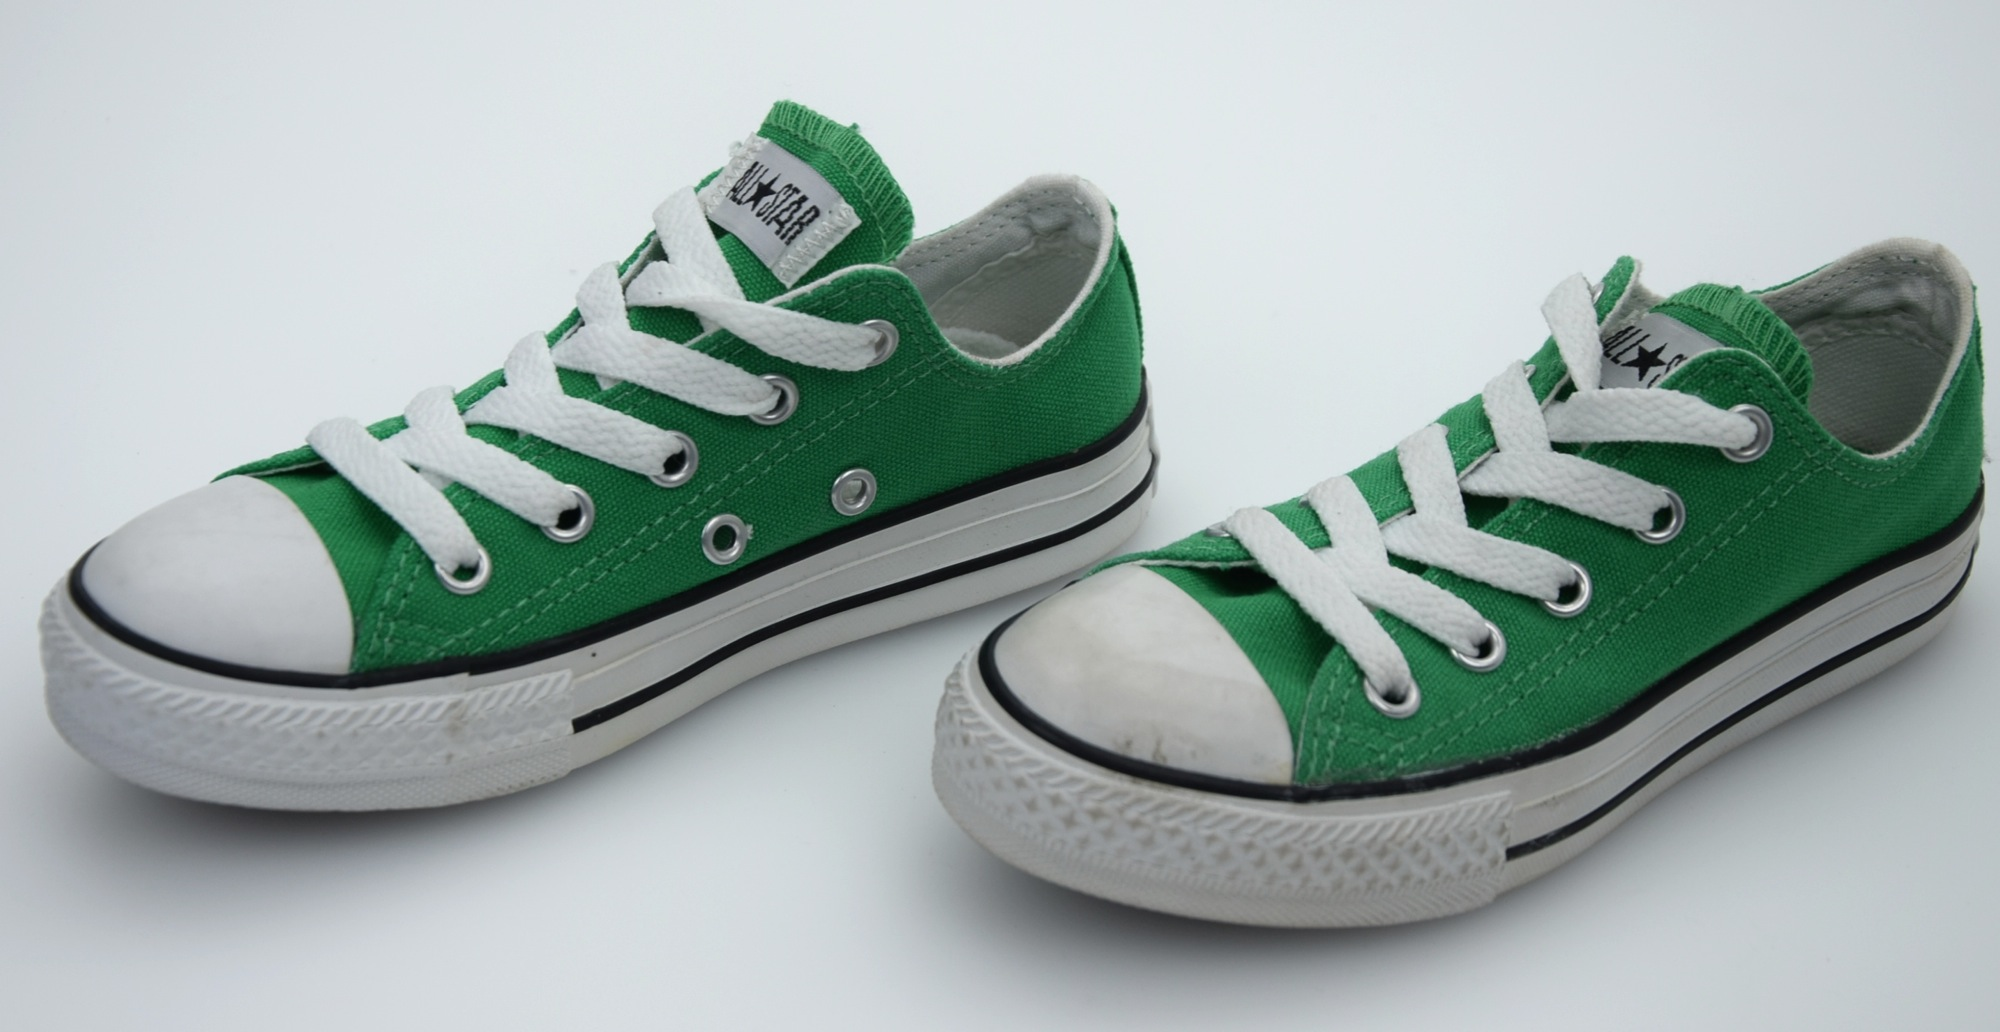 a89692e1224fe5 Details about CONVERSE ALL STAR BOY GIRL UNISEX JUNIOR SNEAKER SHOES COTTON  CODE 315454